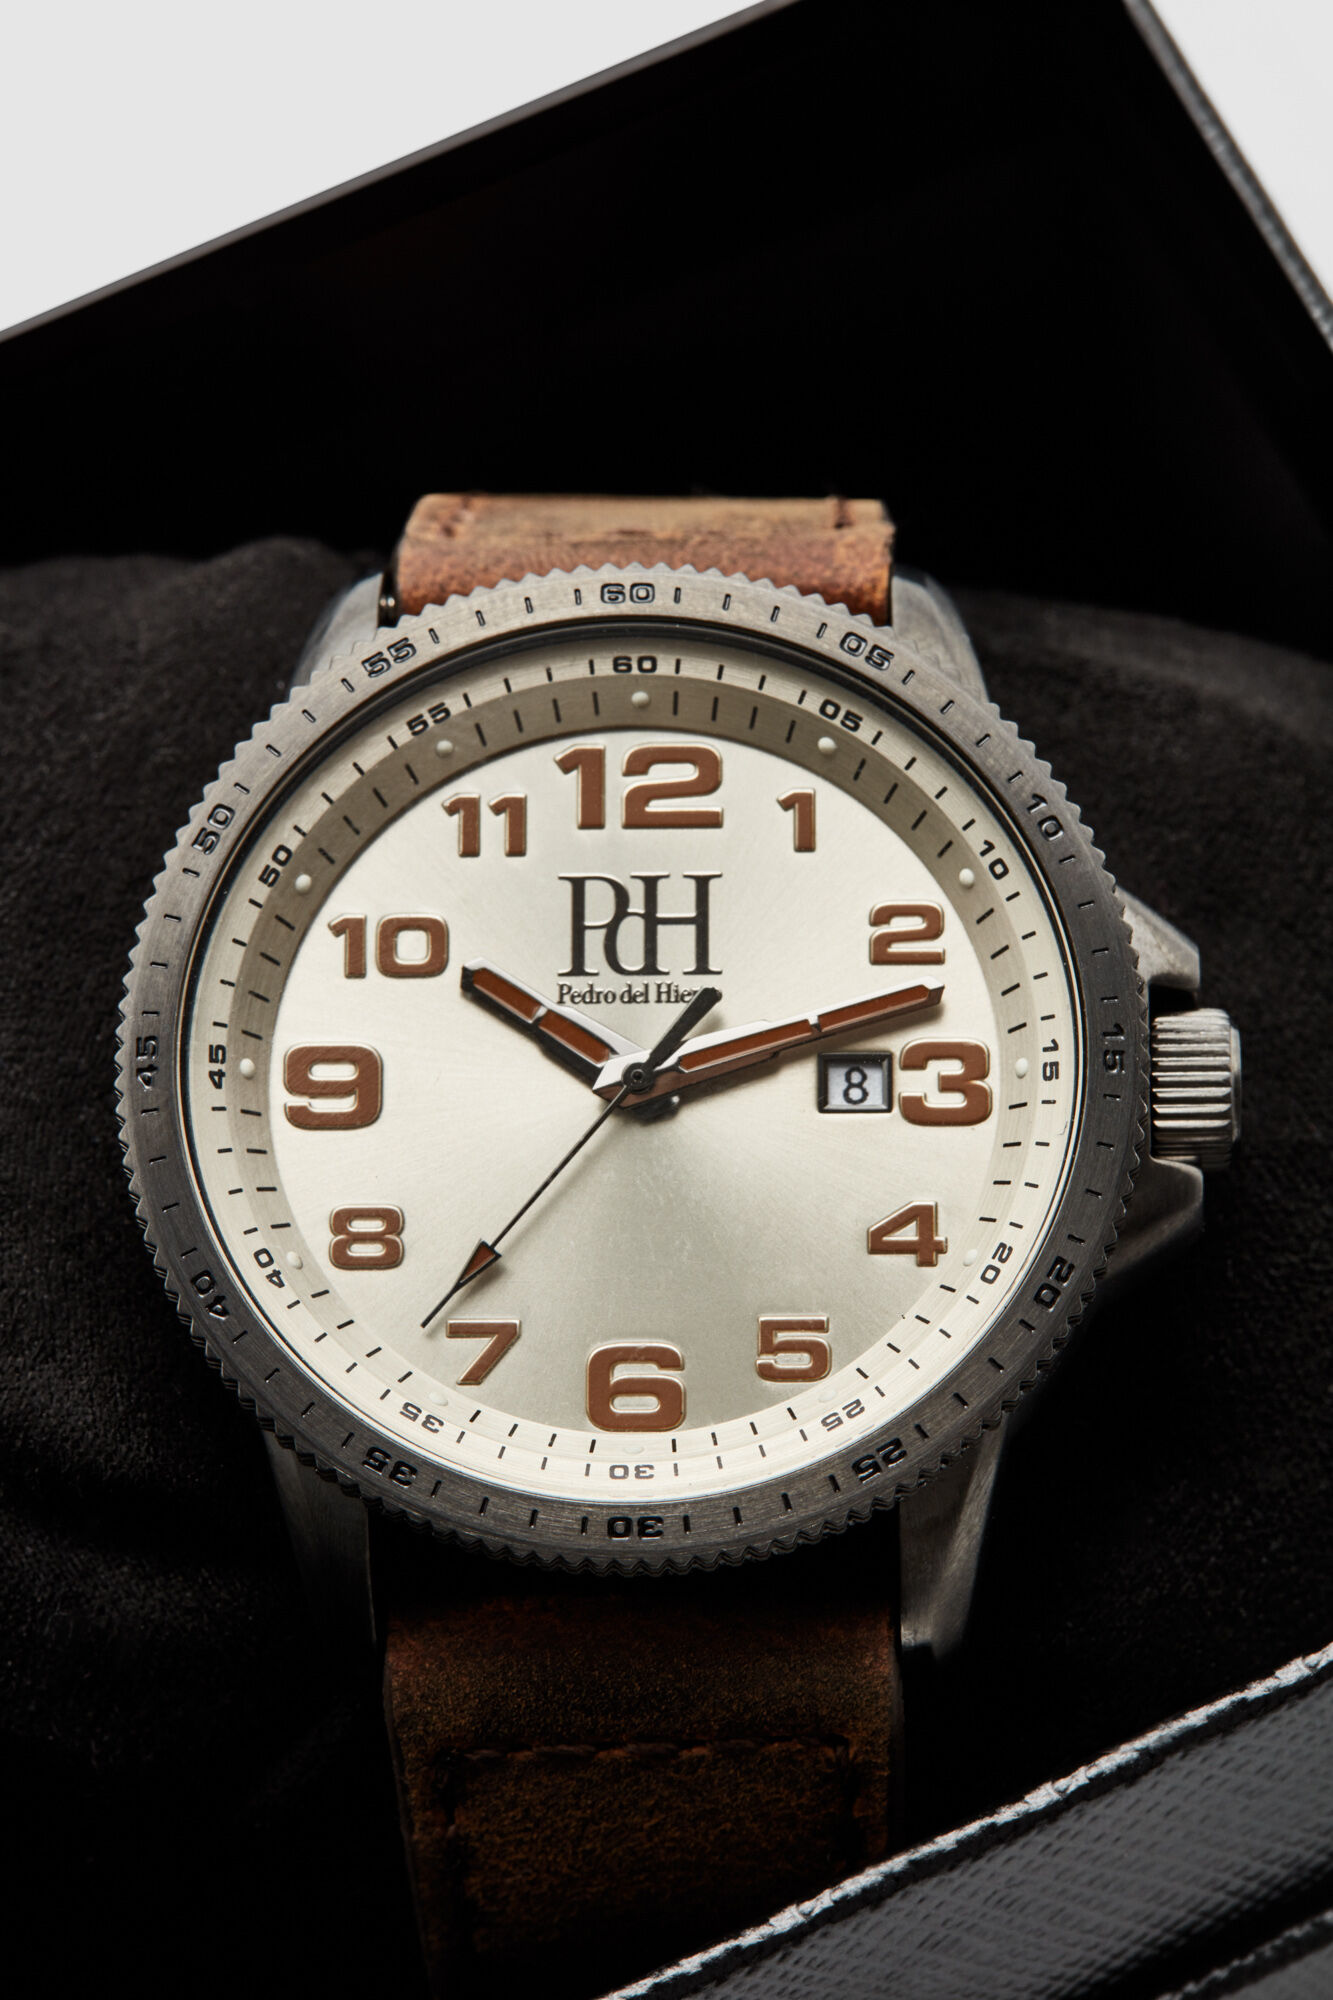 Second Hand Watches >> Leather Strap Watch With Second Hand Watches Pedro Del Hierro Man Woman